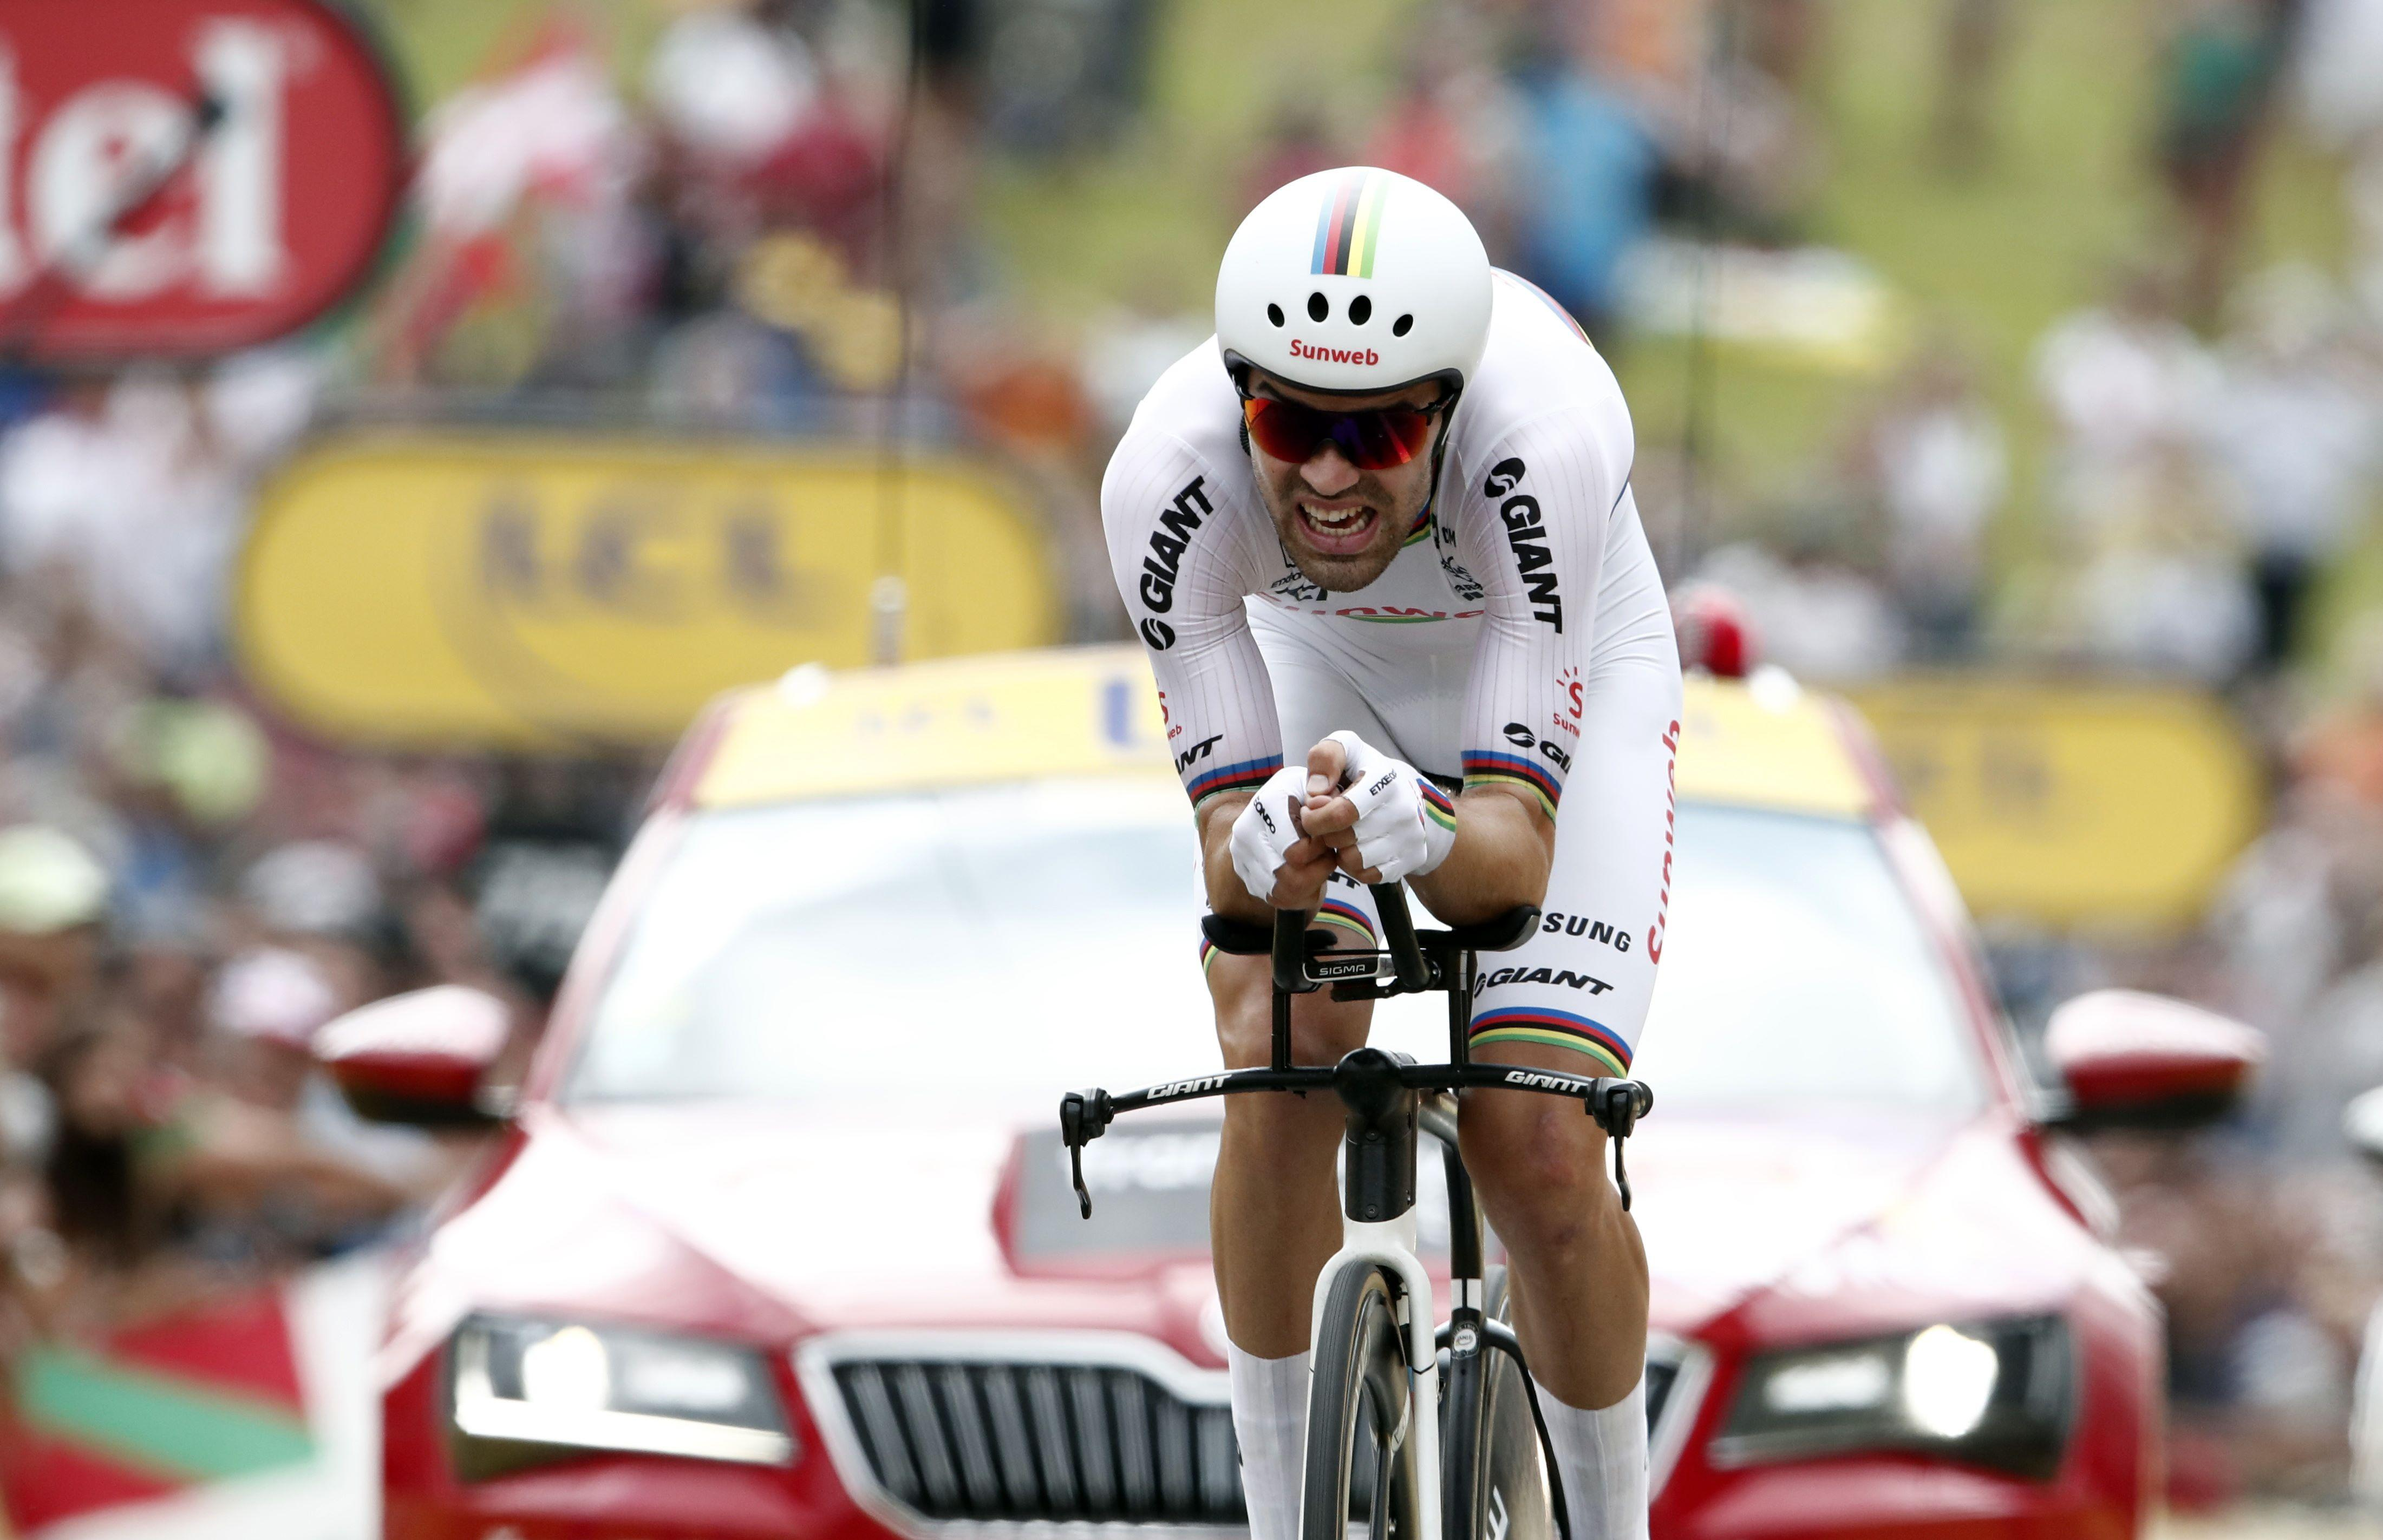 Dumoulin rode in the world champion jersey, as the best Time Trial rider at the moment